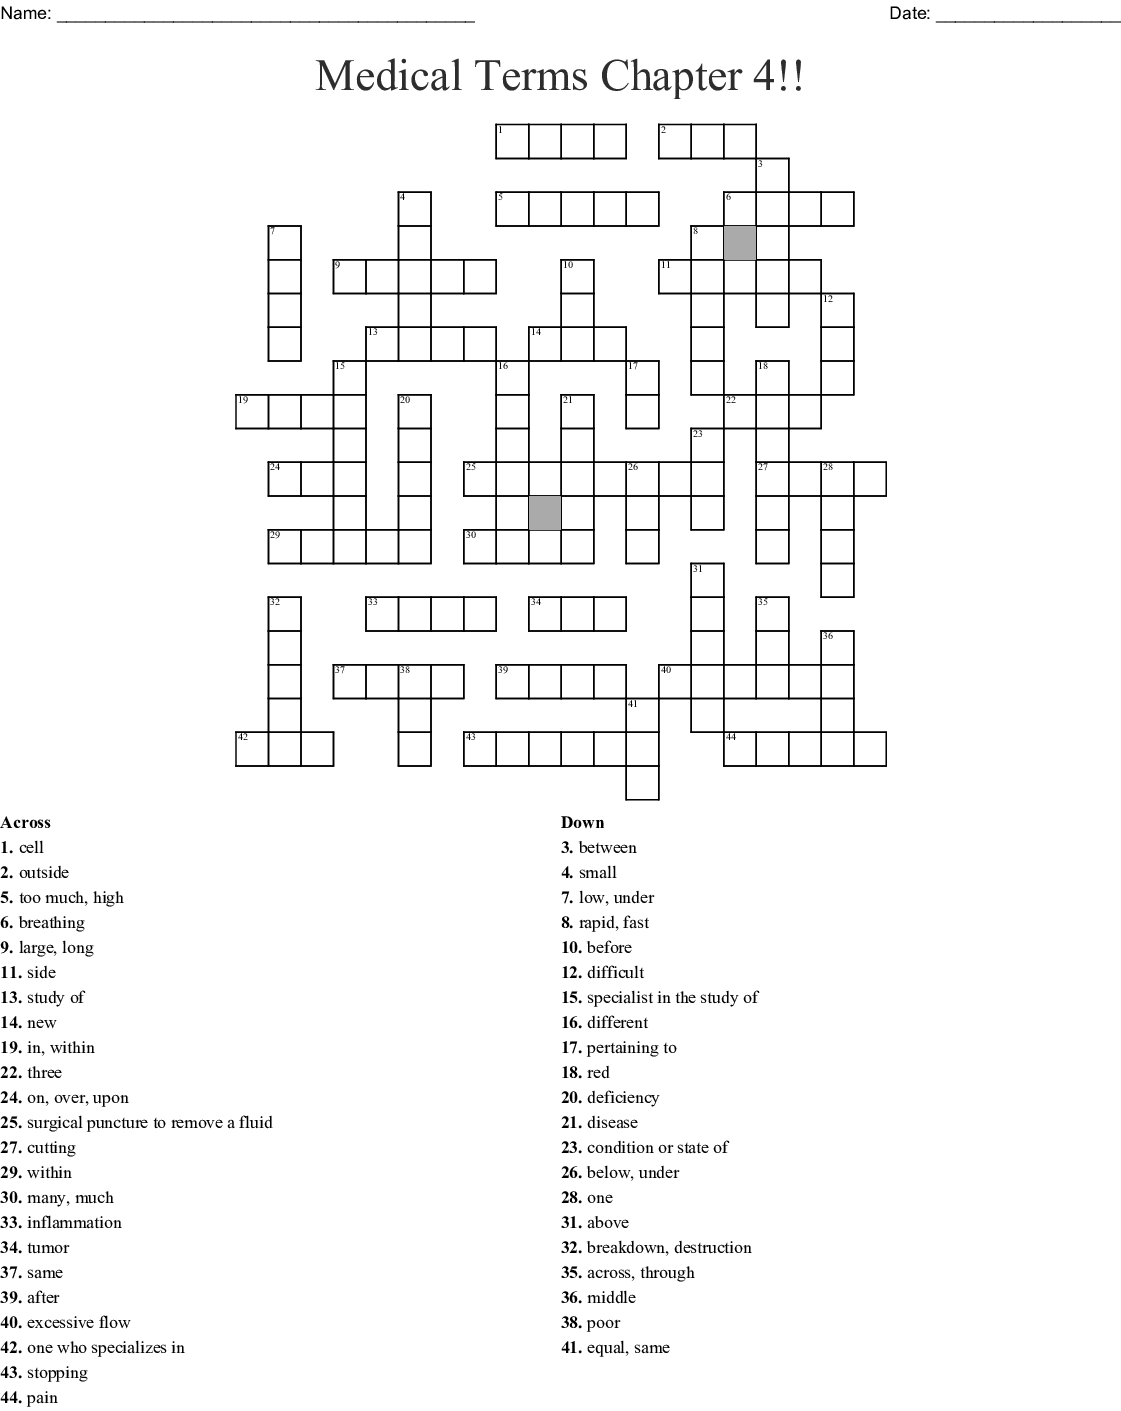 Medical terminology crossword puzzle answers health center 21